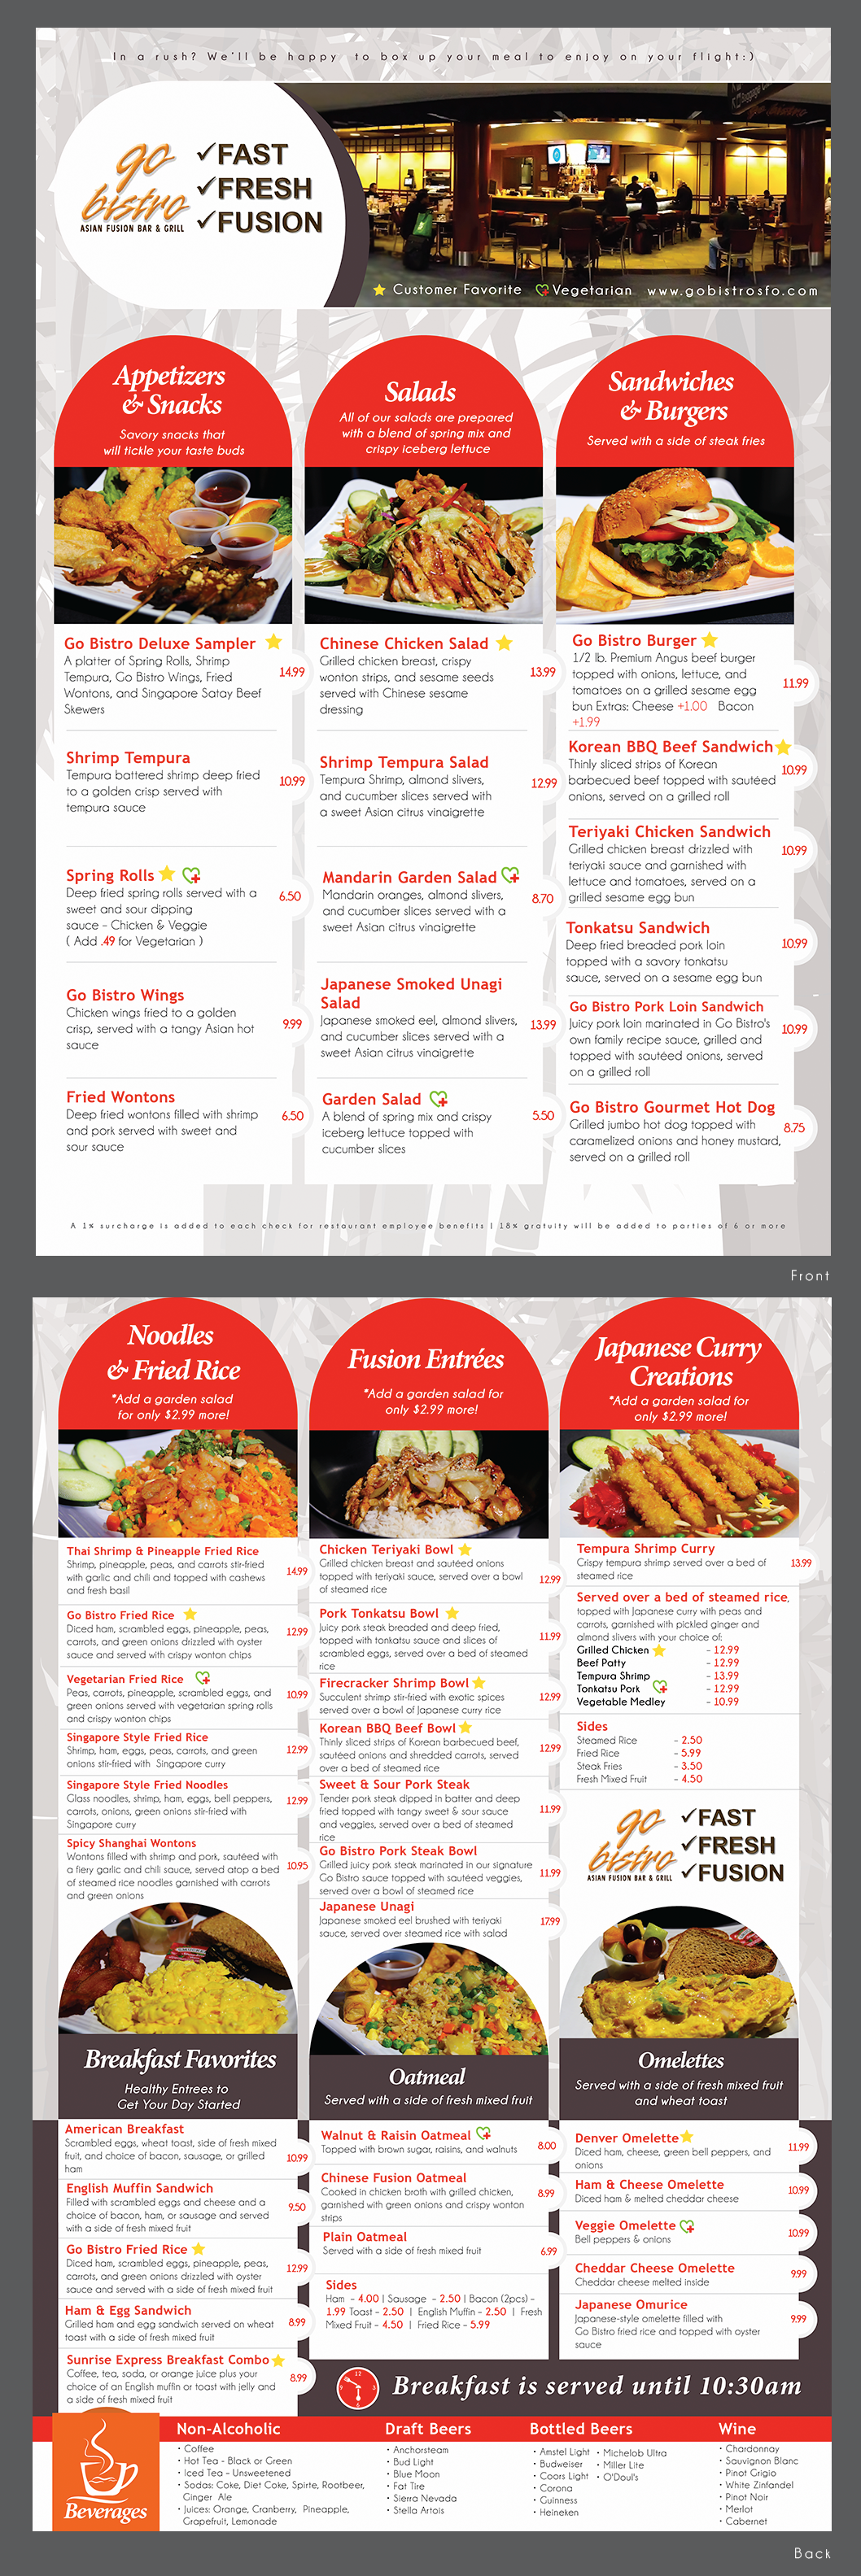 Create a menu for Go Bistro - Asian Fusion Bar & Grill inside San Francisco Int'l Airport